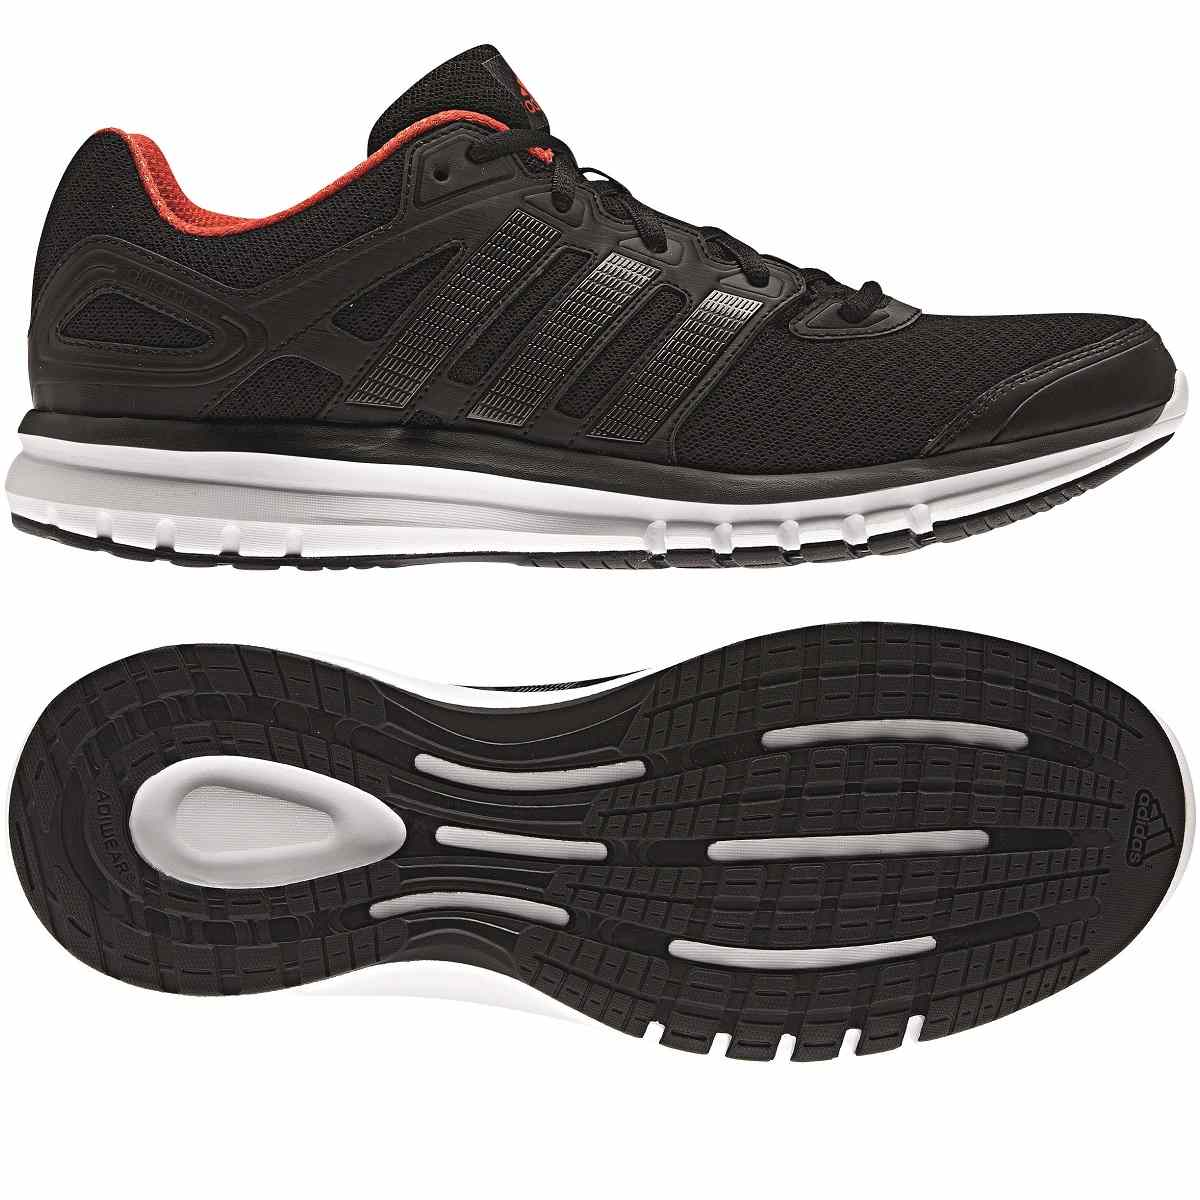 adidas duramo 6 schuhe laufschuhe joggingschuhe. Black Bedroom Furniture Sets. Home Design Ideas